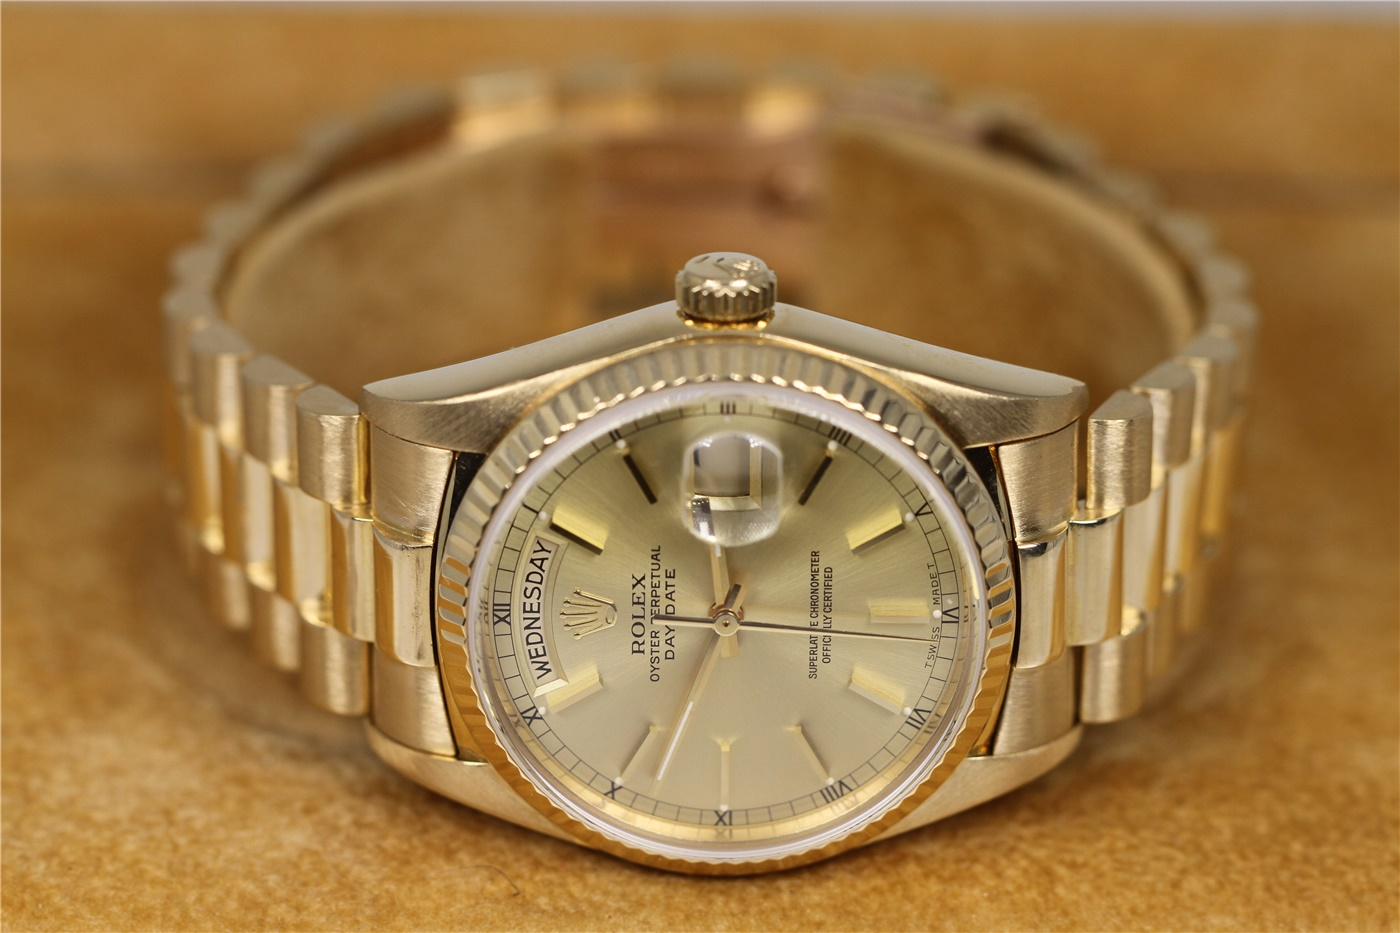 Mens Rolex President Day Date Watch With Box And Papers